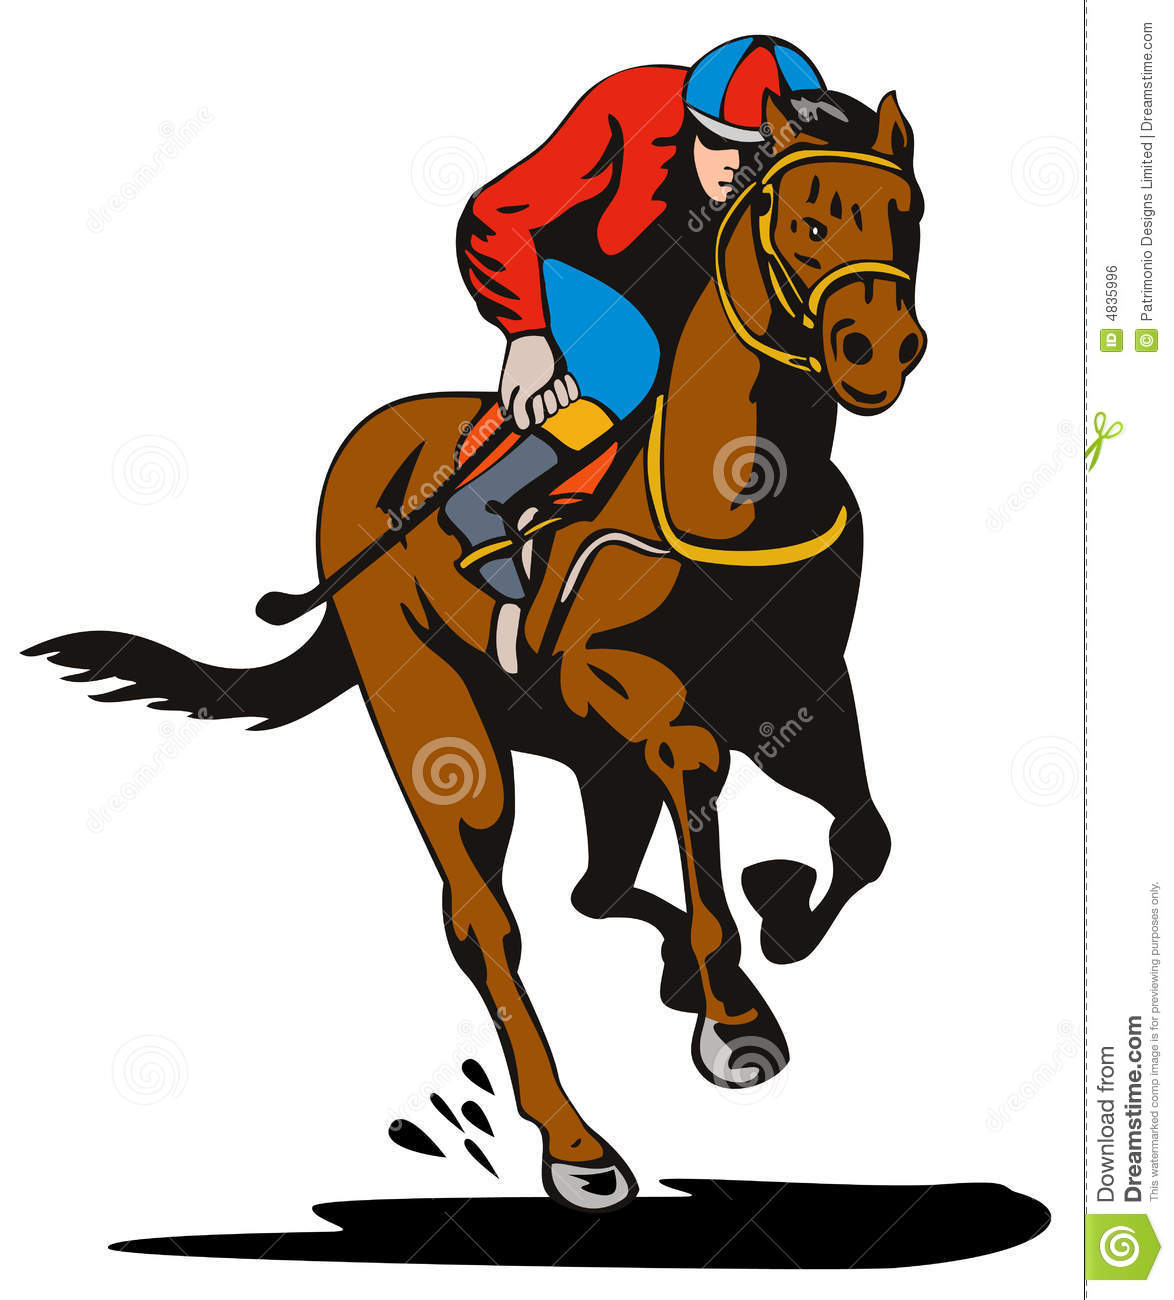 Jockey And Horse Racing Royalty Free Stock Image - Image: 4835996